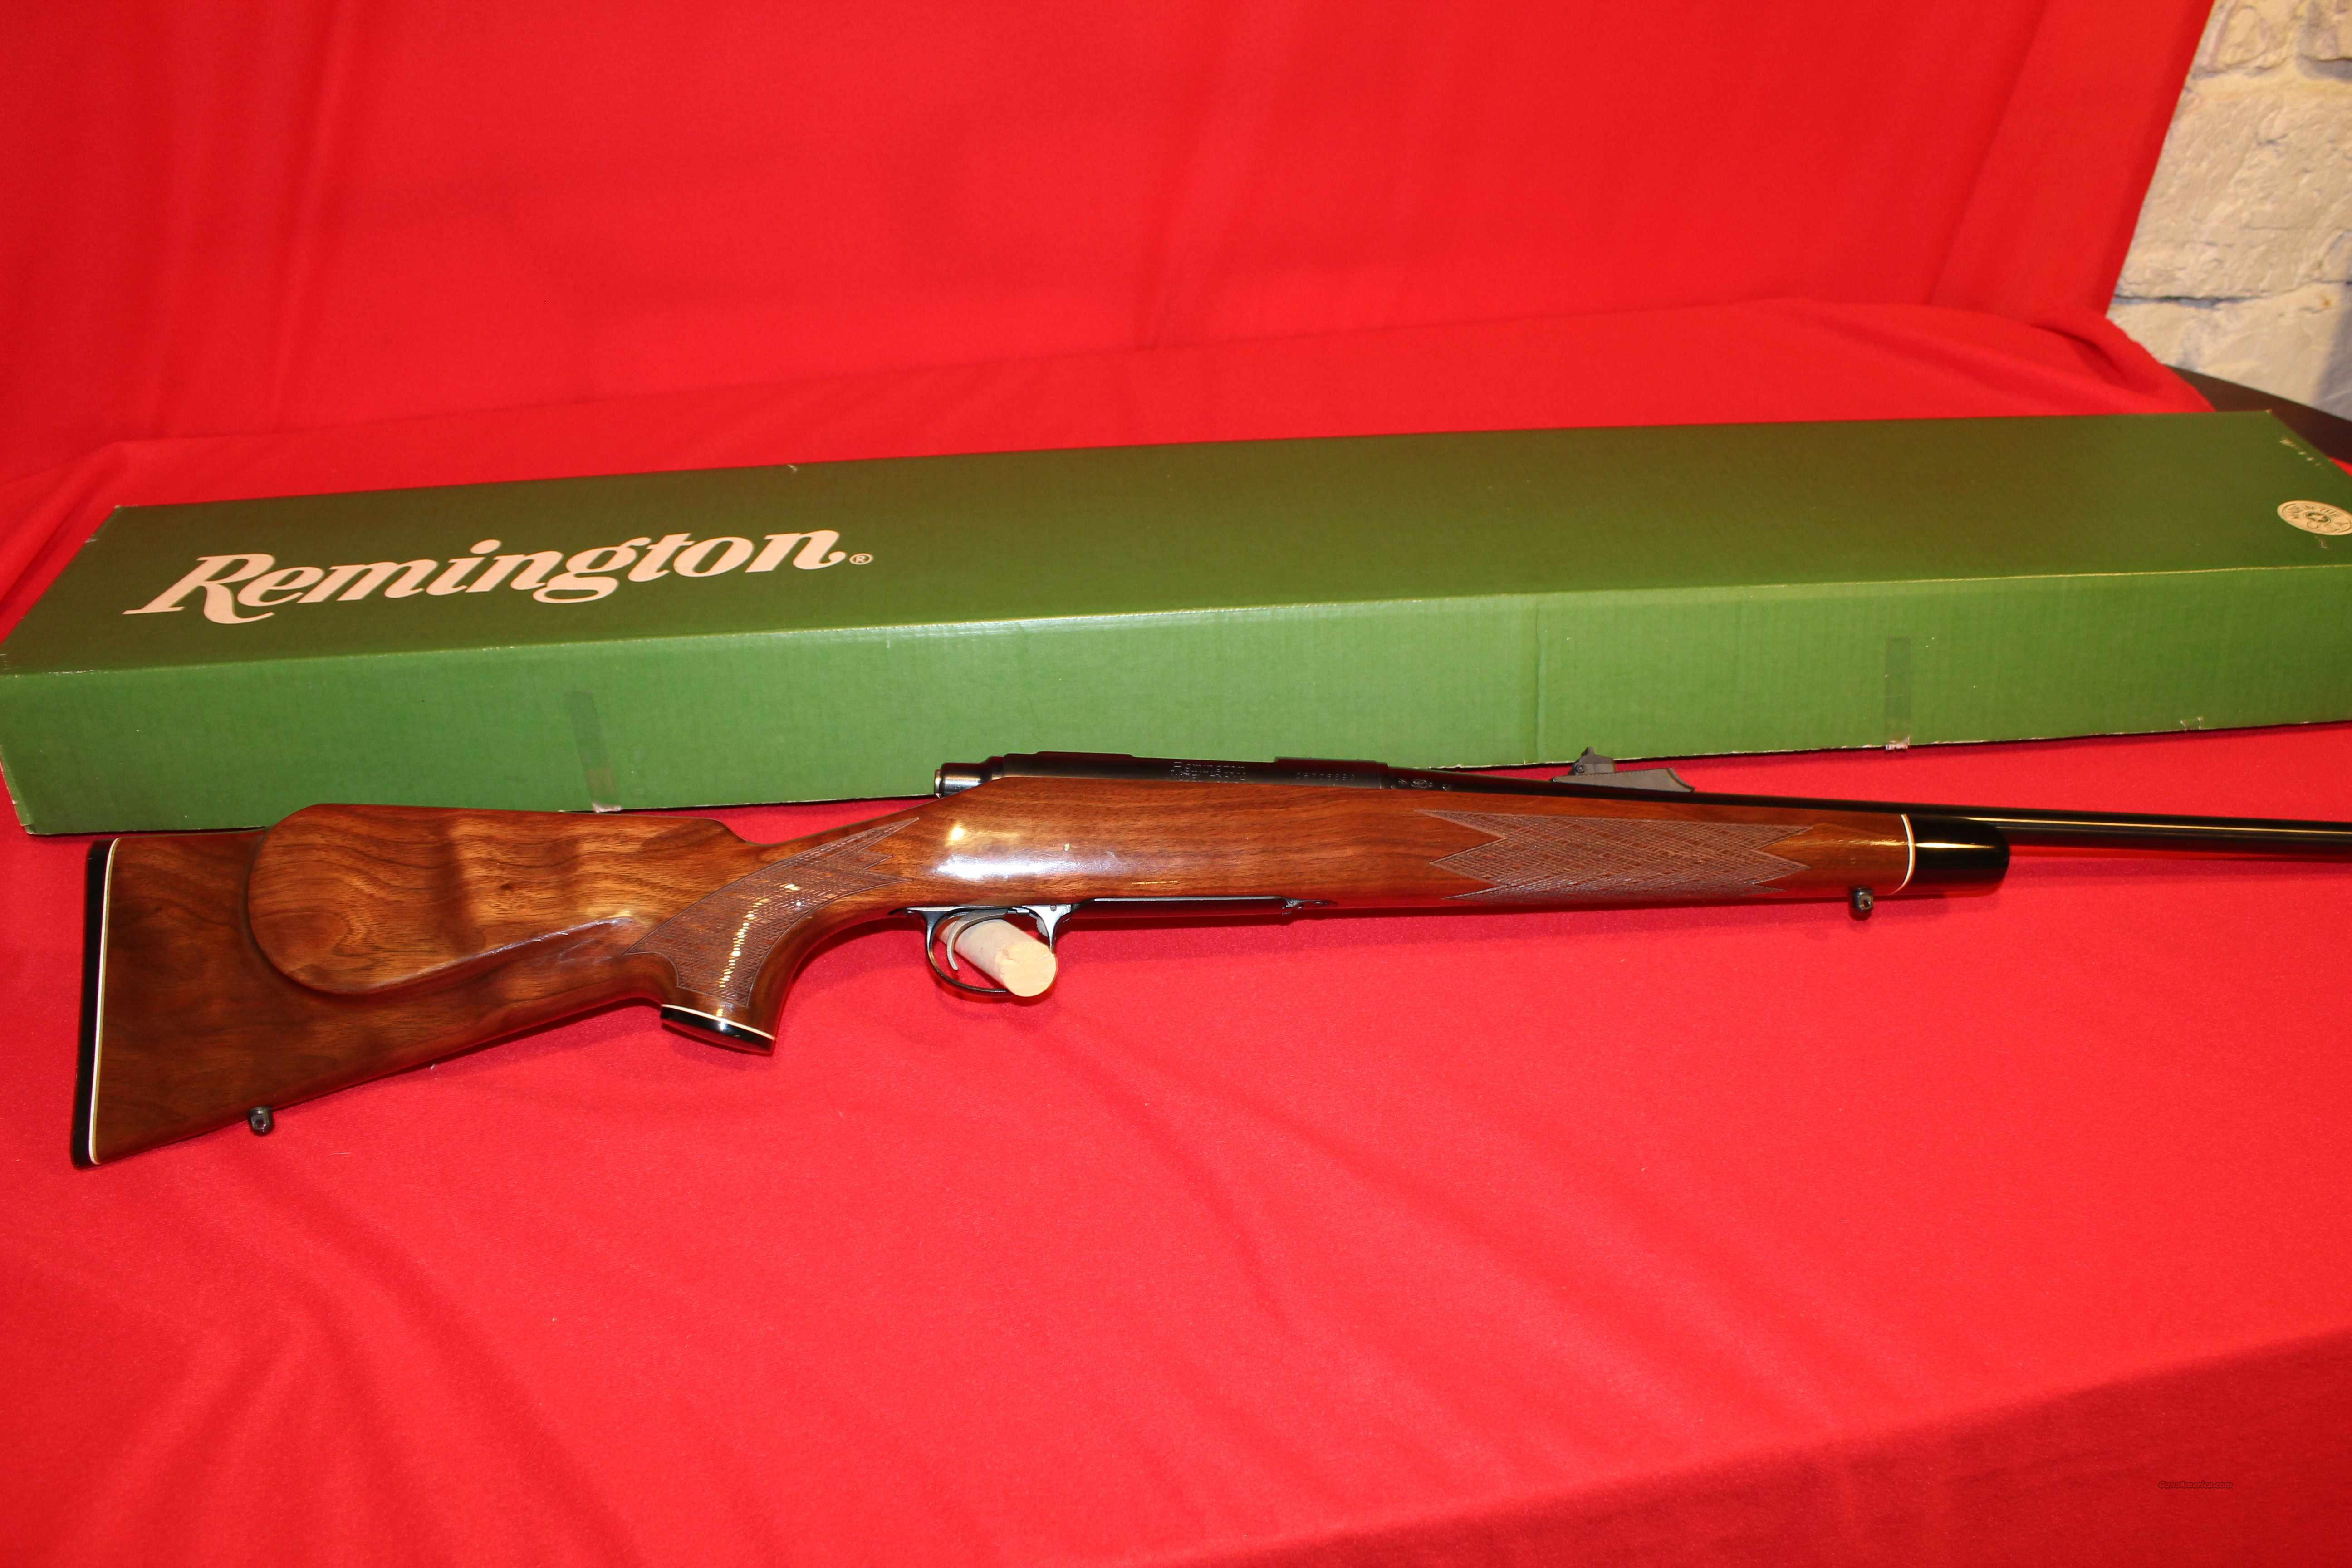 Rare Early Remington 700, 22-250 Left Hand, W/ Box Possibly Unfired!   Guns > Rifles > Remington Rifles - Modern > Model 700 > Sporting